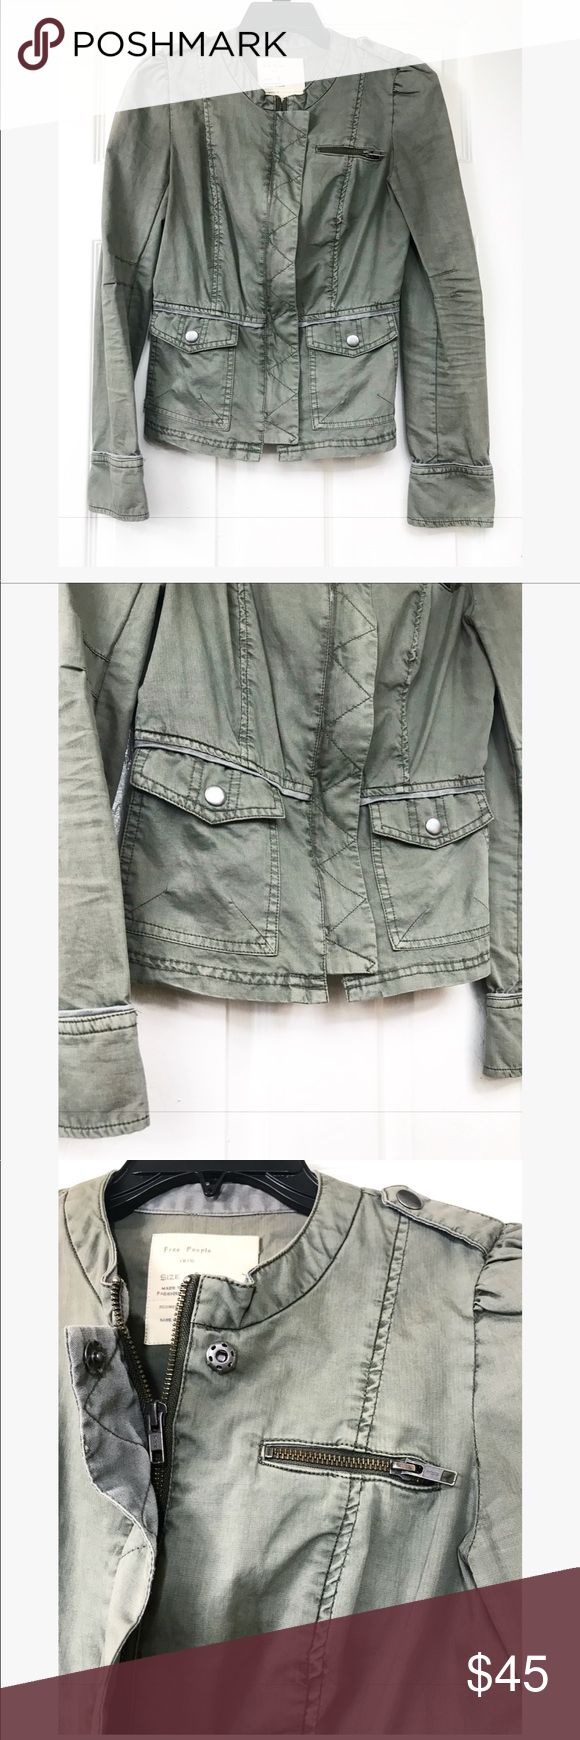 Free People Olive Green Military Jacket Beautiful free people green jacket , perfect for fall . Has adorable pocket with cute bottoms, side zippers and a full zipper down the middle . Has button front closure , falls under relaxed fit with a peplum back Free People Jackets & Coats